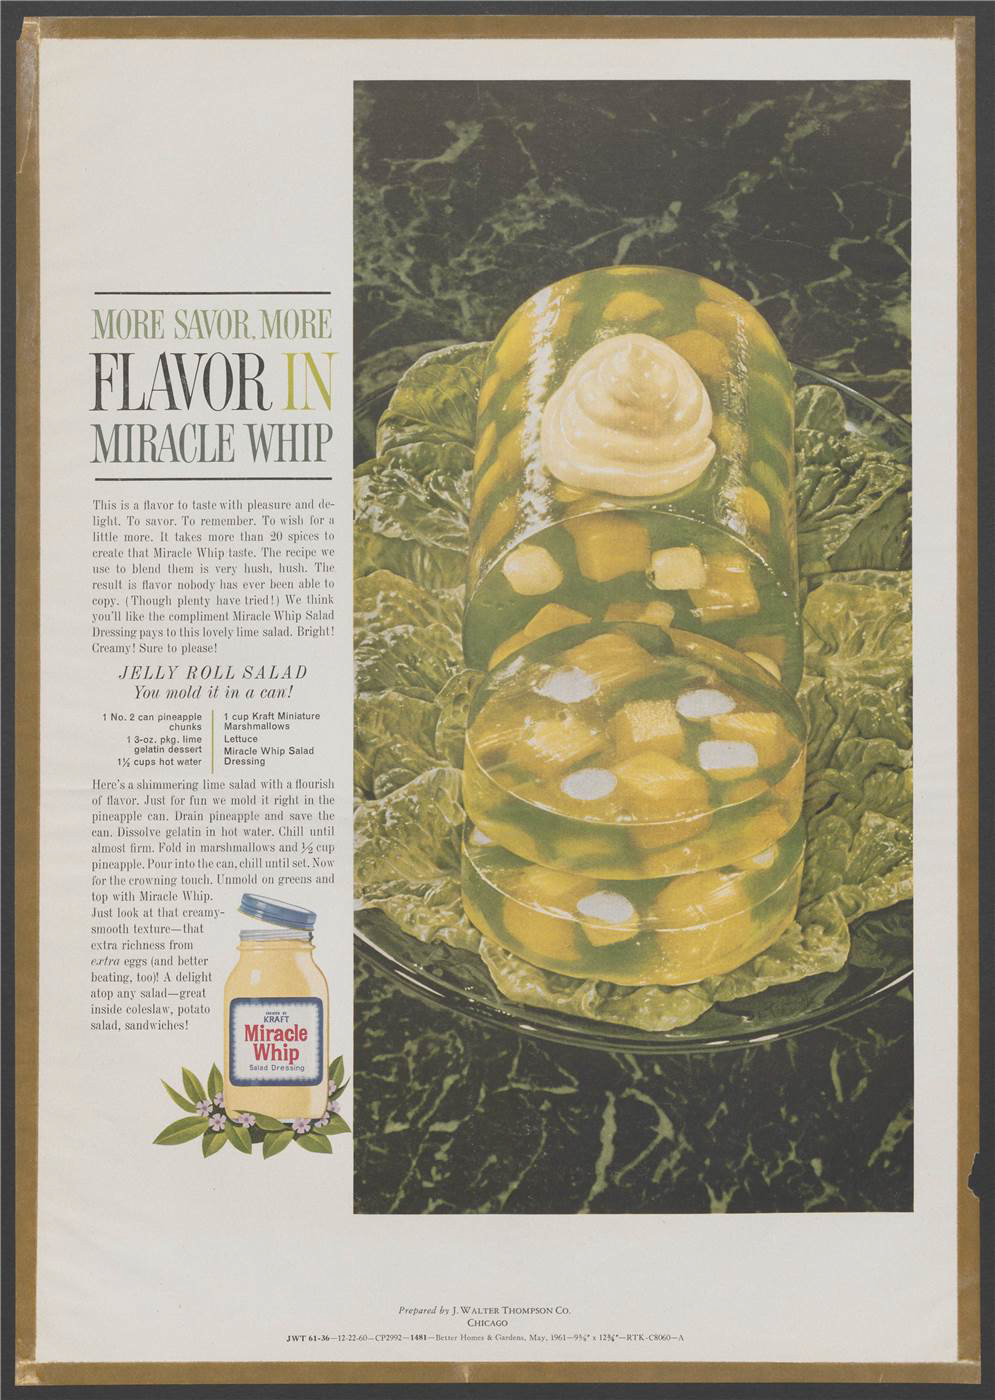 """More savor. More flavor in Miracle Whip"". A cylindrical, green gelatine salad topped with Miracle Whip, sitting on a bed of lettuce, and a jar of Miracle Whip are shown. Stresses the unique taste and secret recipe of Miracle Whip. Includes a recipe for the salad"